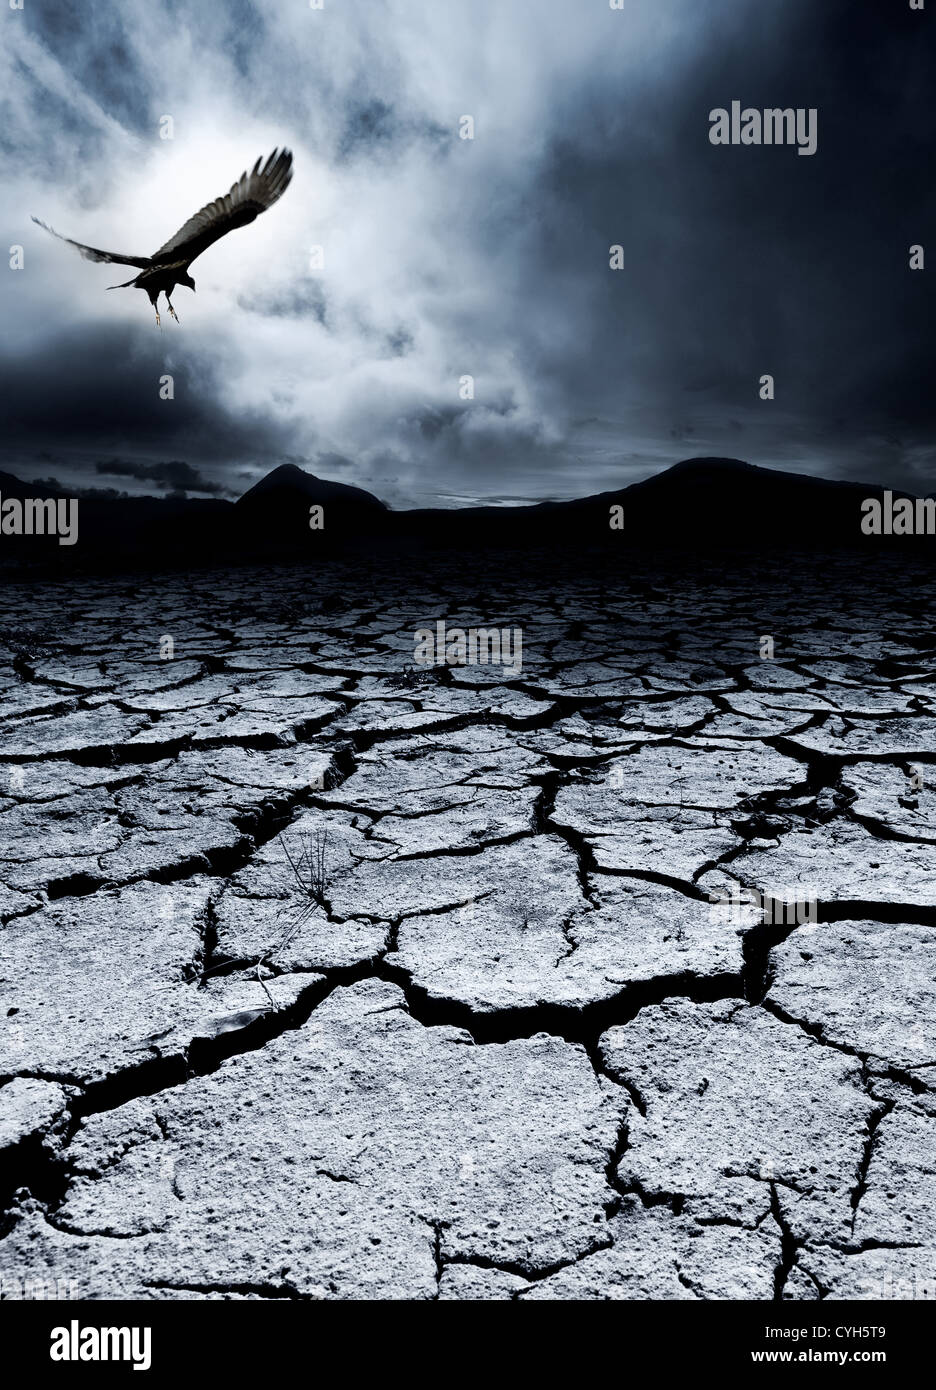 A bird flies over a desolate landscape - Stock Image